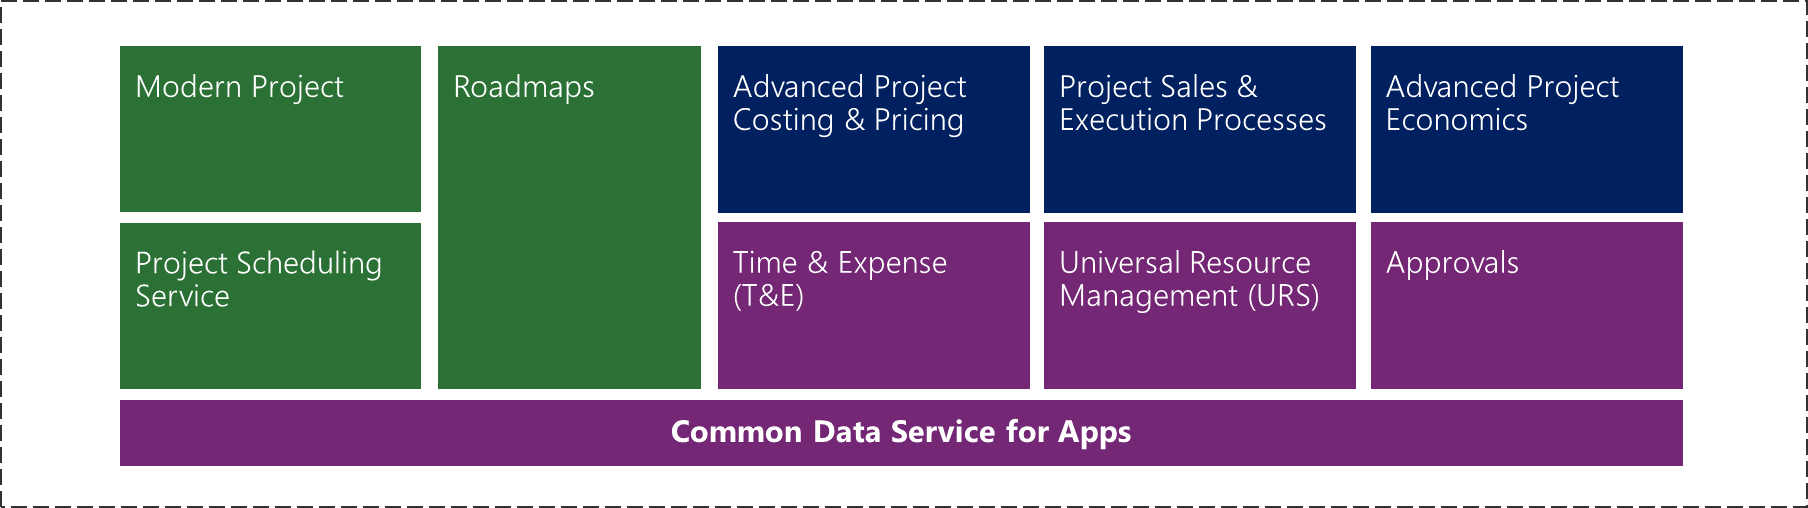 Common Data Service for Apps